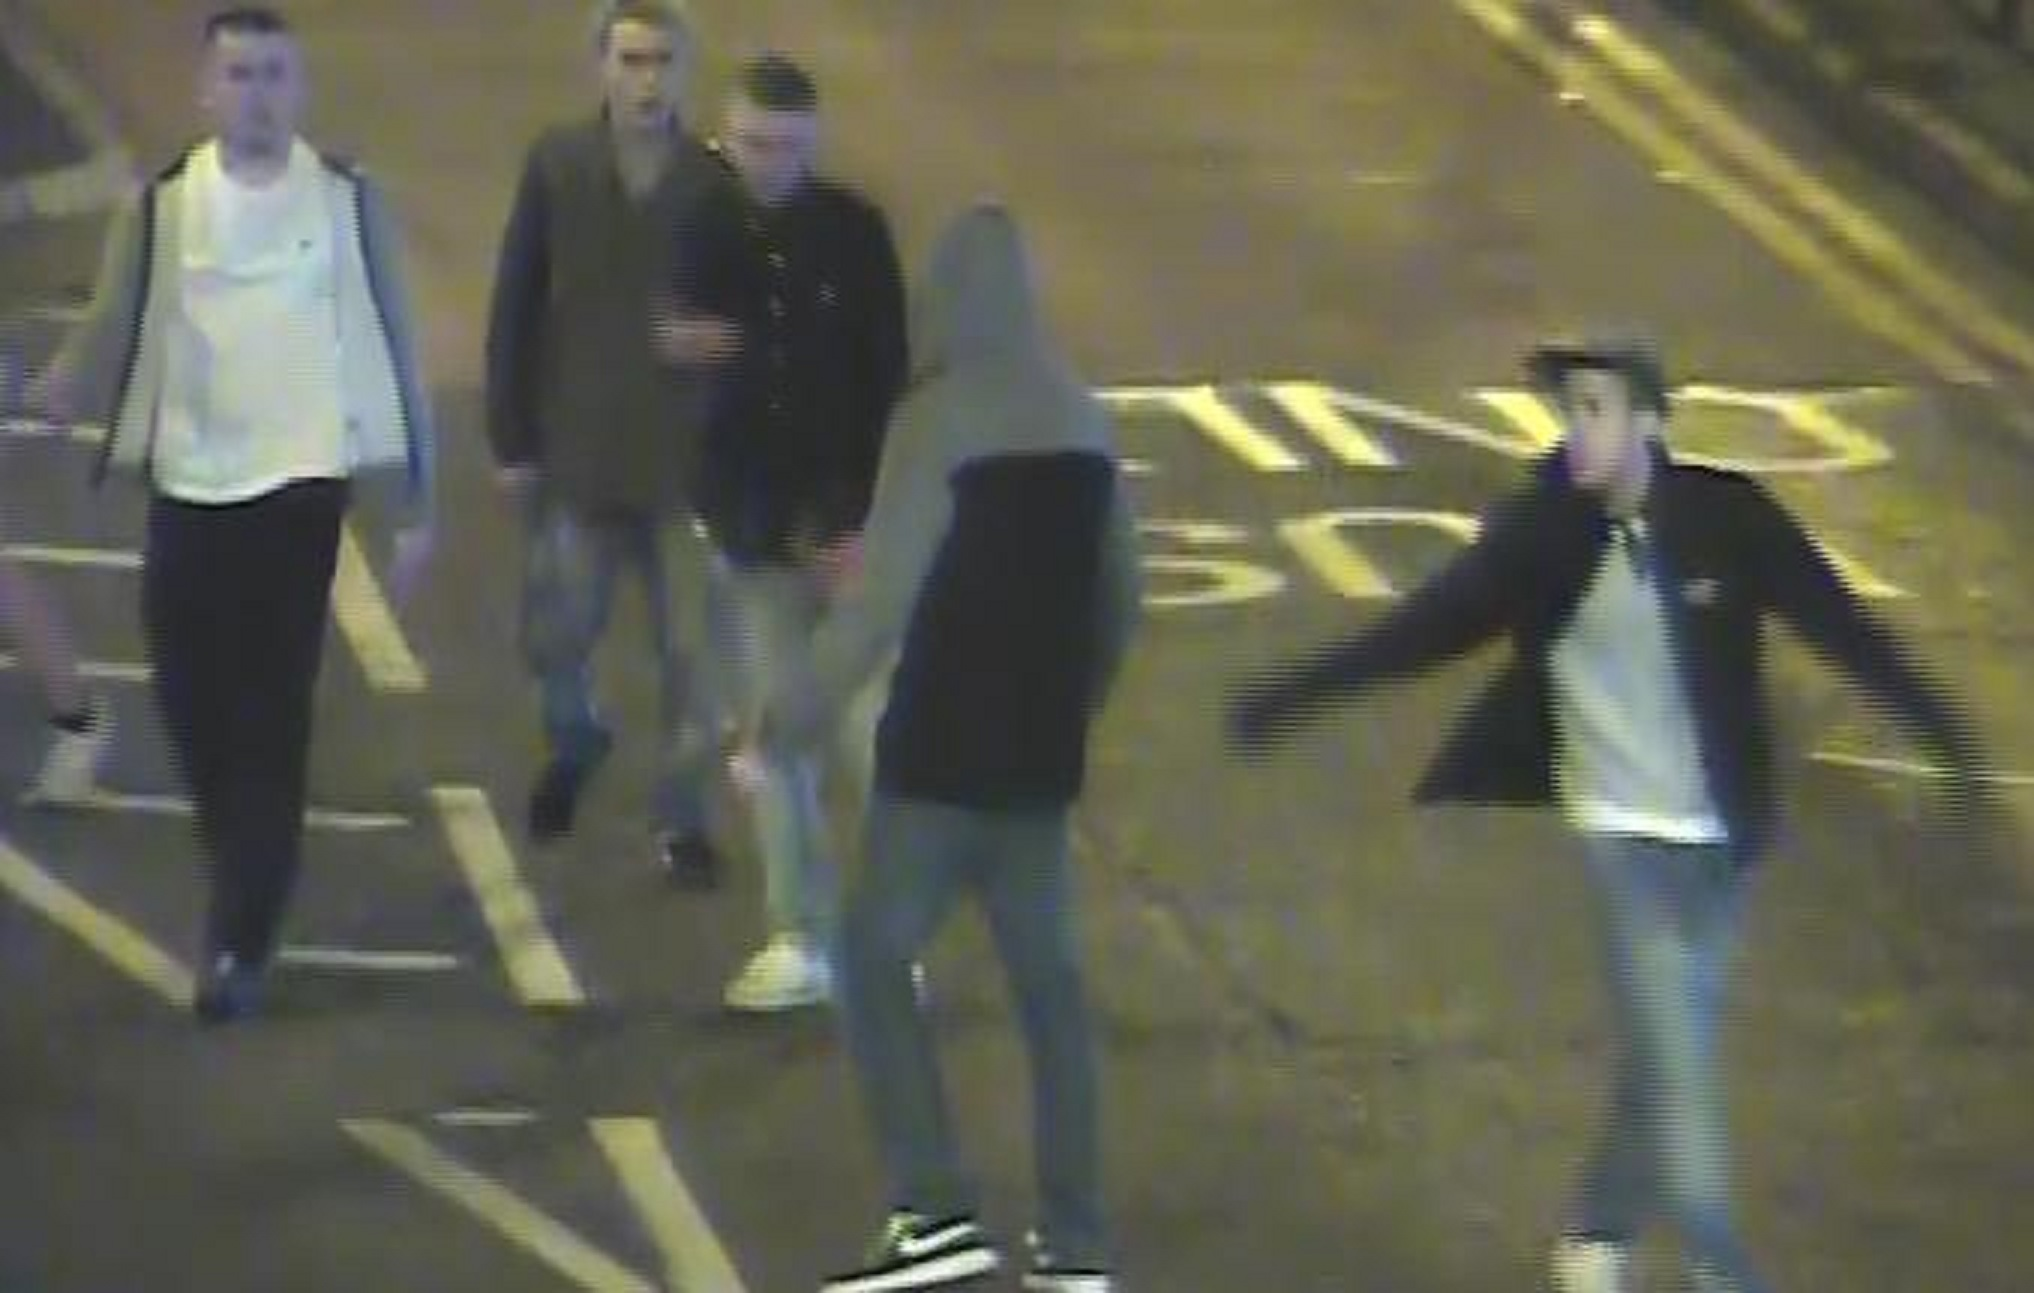 Police are keen to identify the people in this picture.